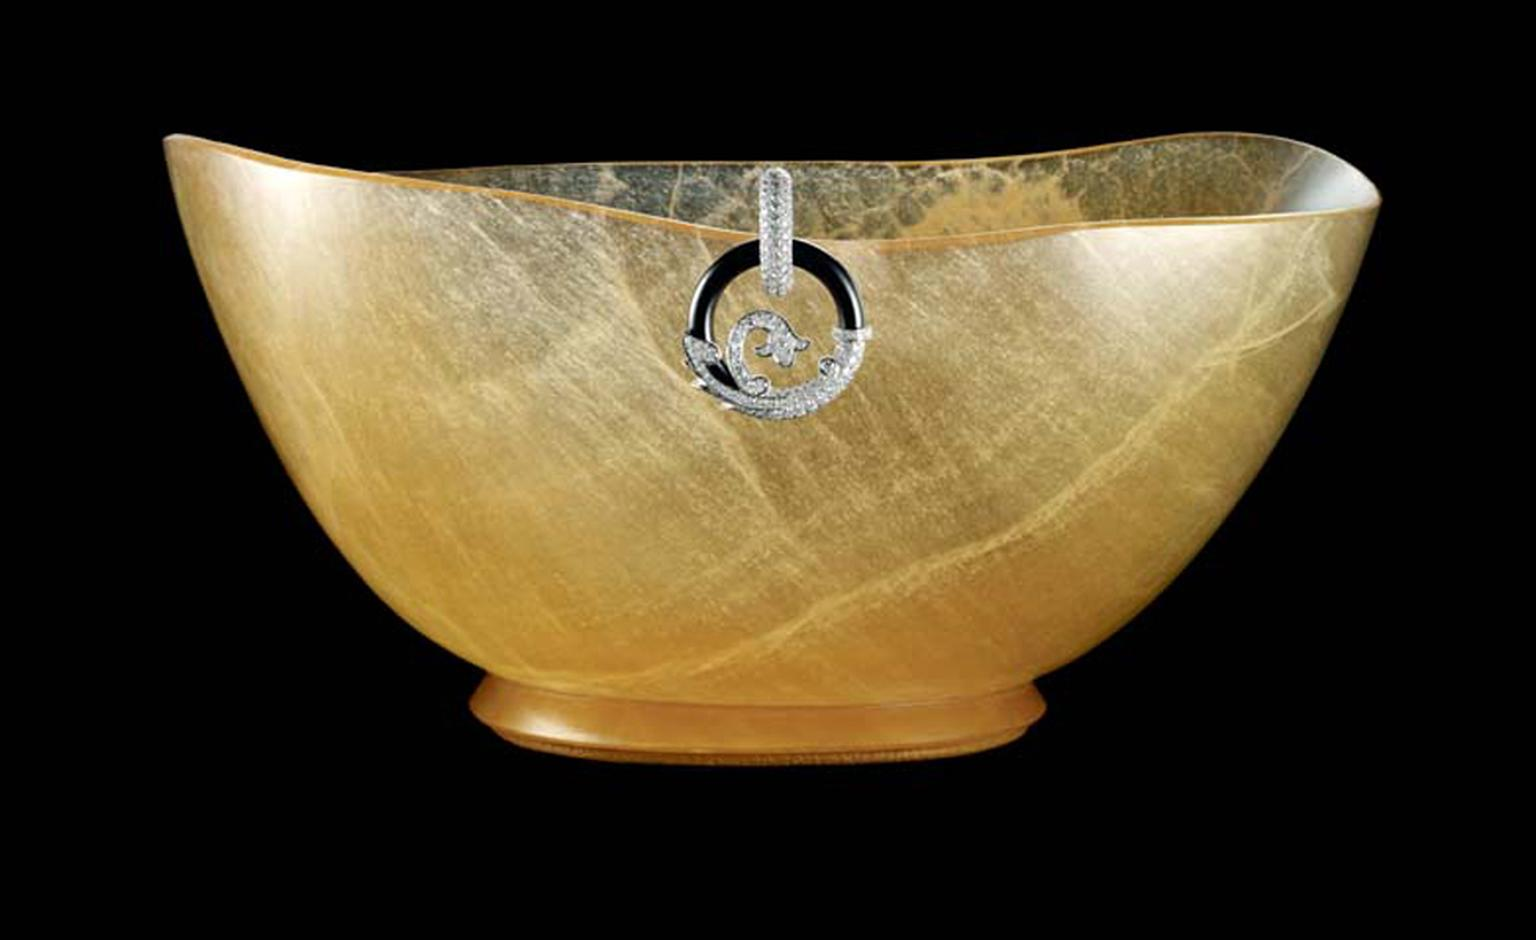 Cartier Precious Objects bowl with onyx and diamond detail